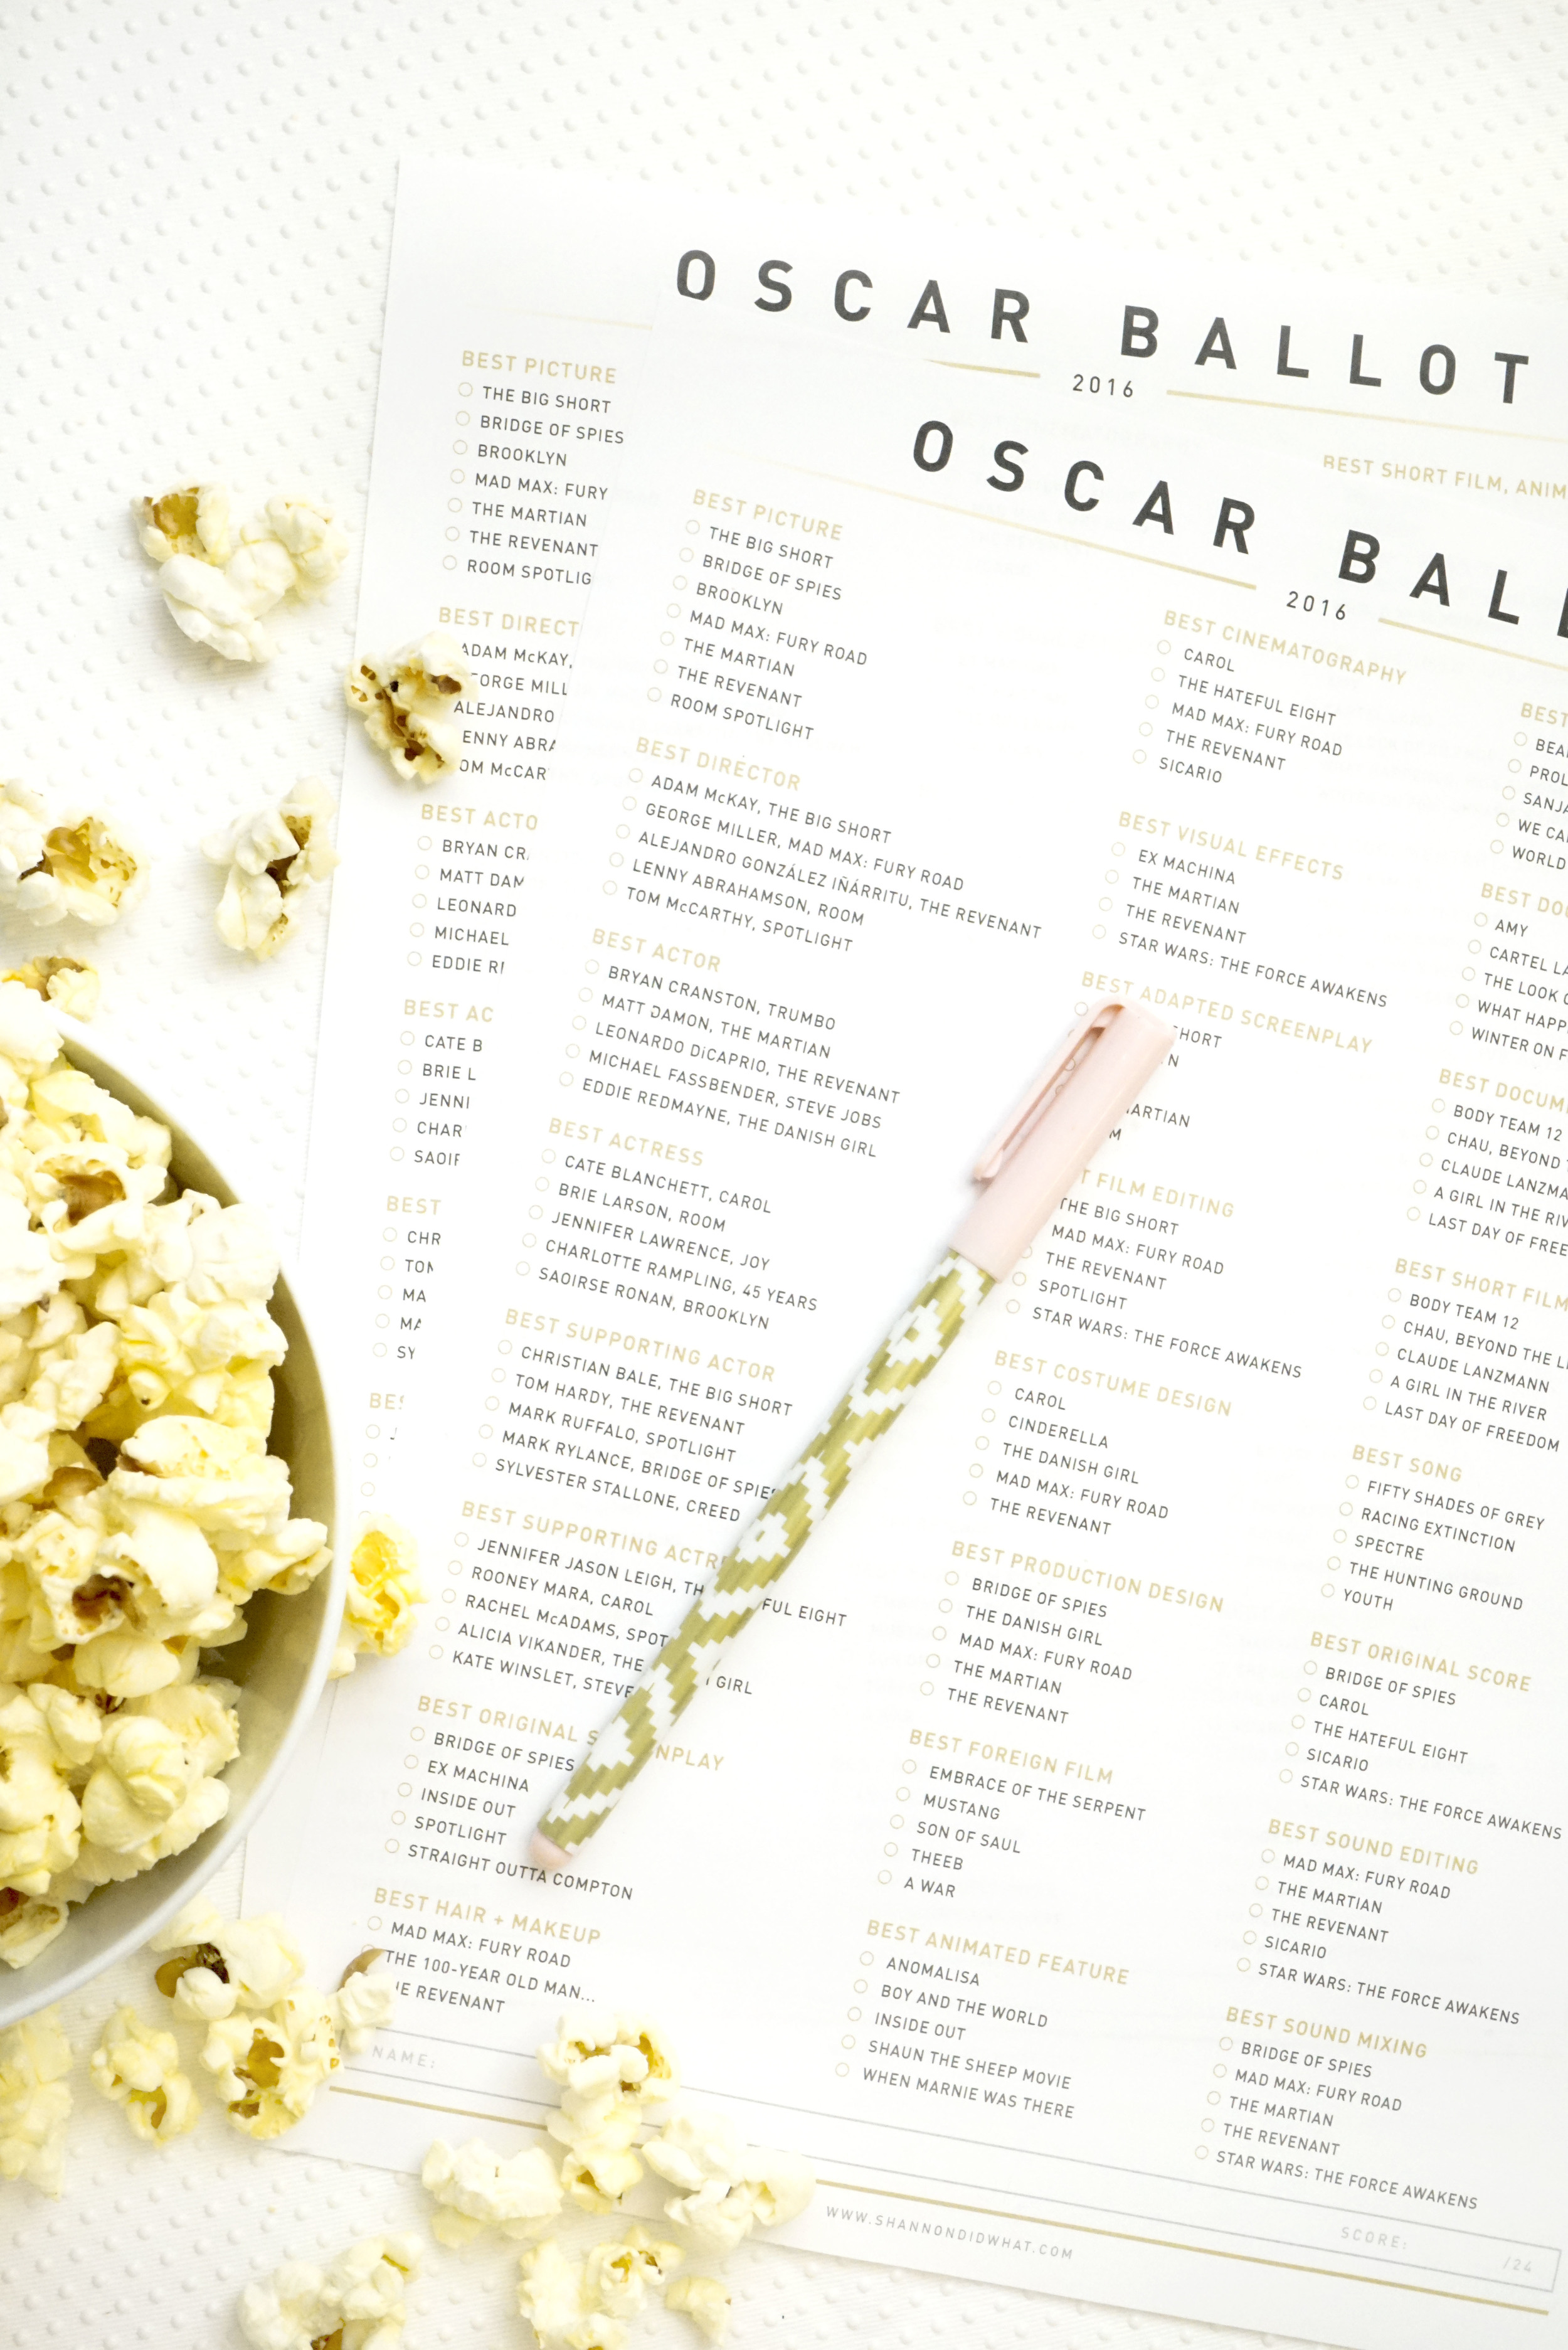 Free Downloadable Oscars Ballot - Shannon Did What?